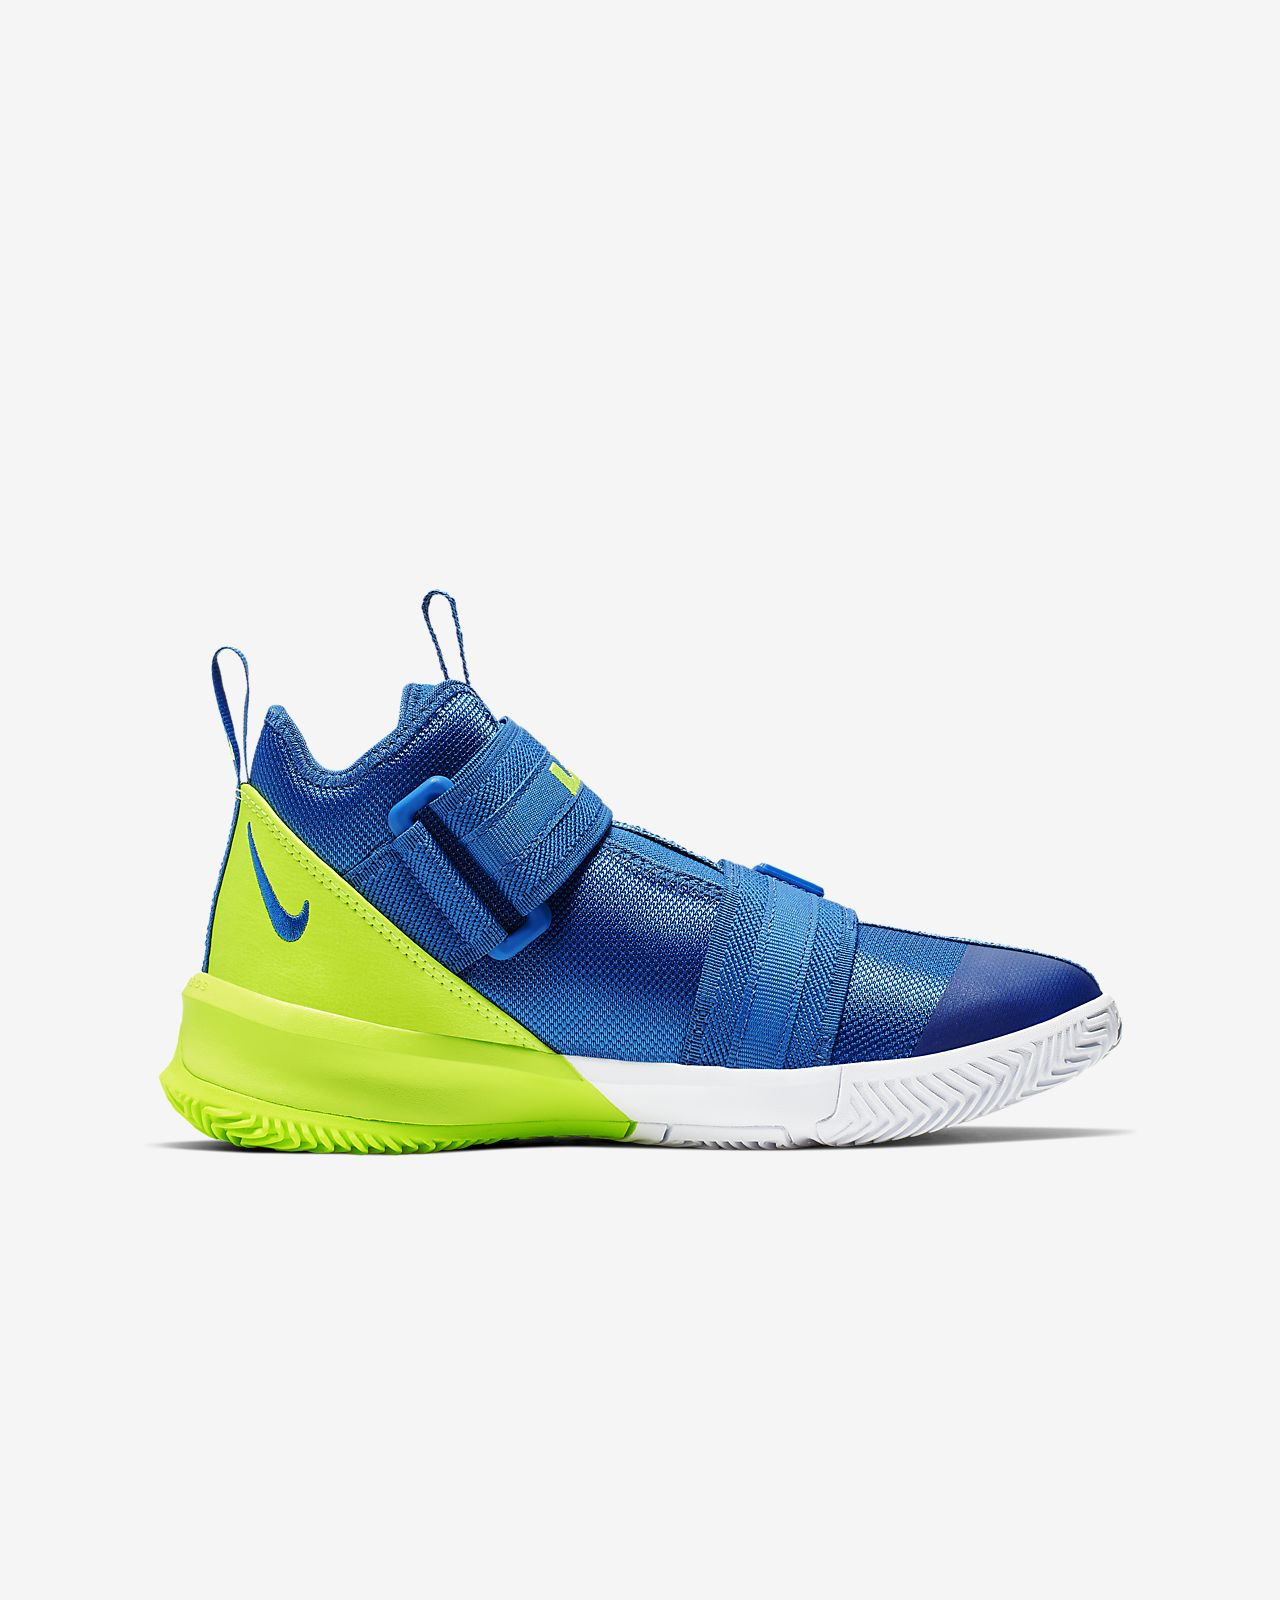 new style 8273d ab7c3 LeBron Soldier 13 Big Kids' Basketball Shoe